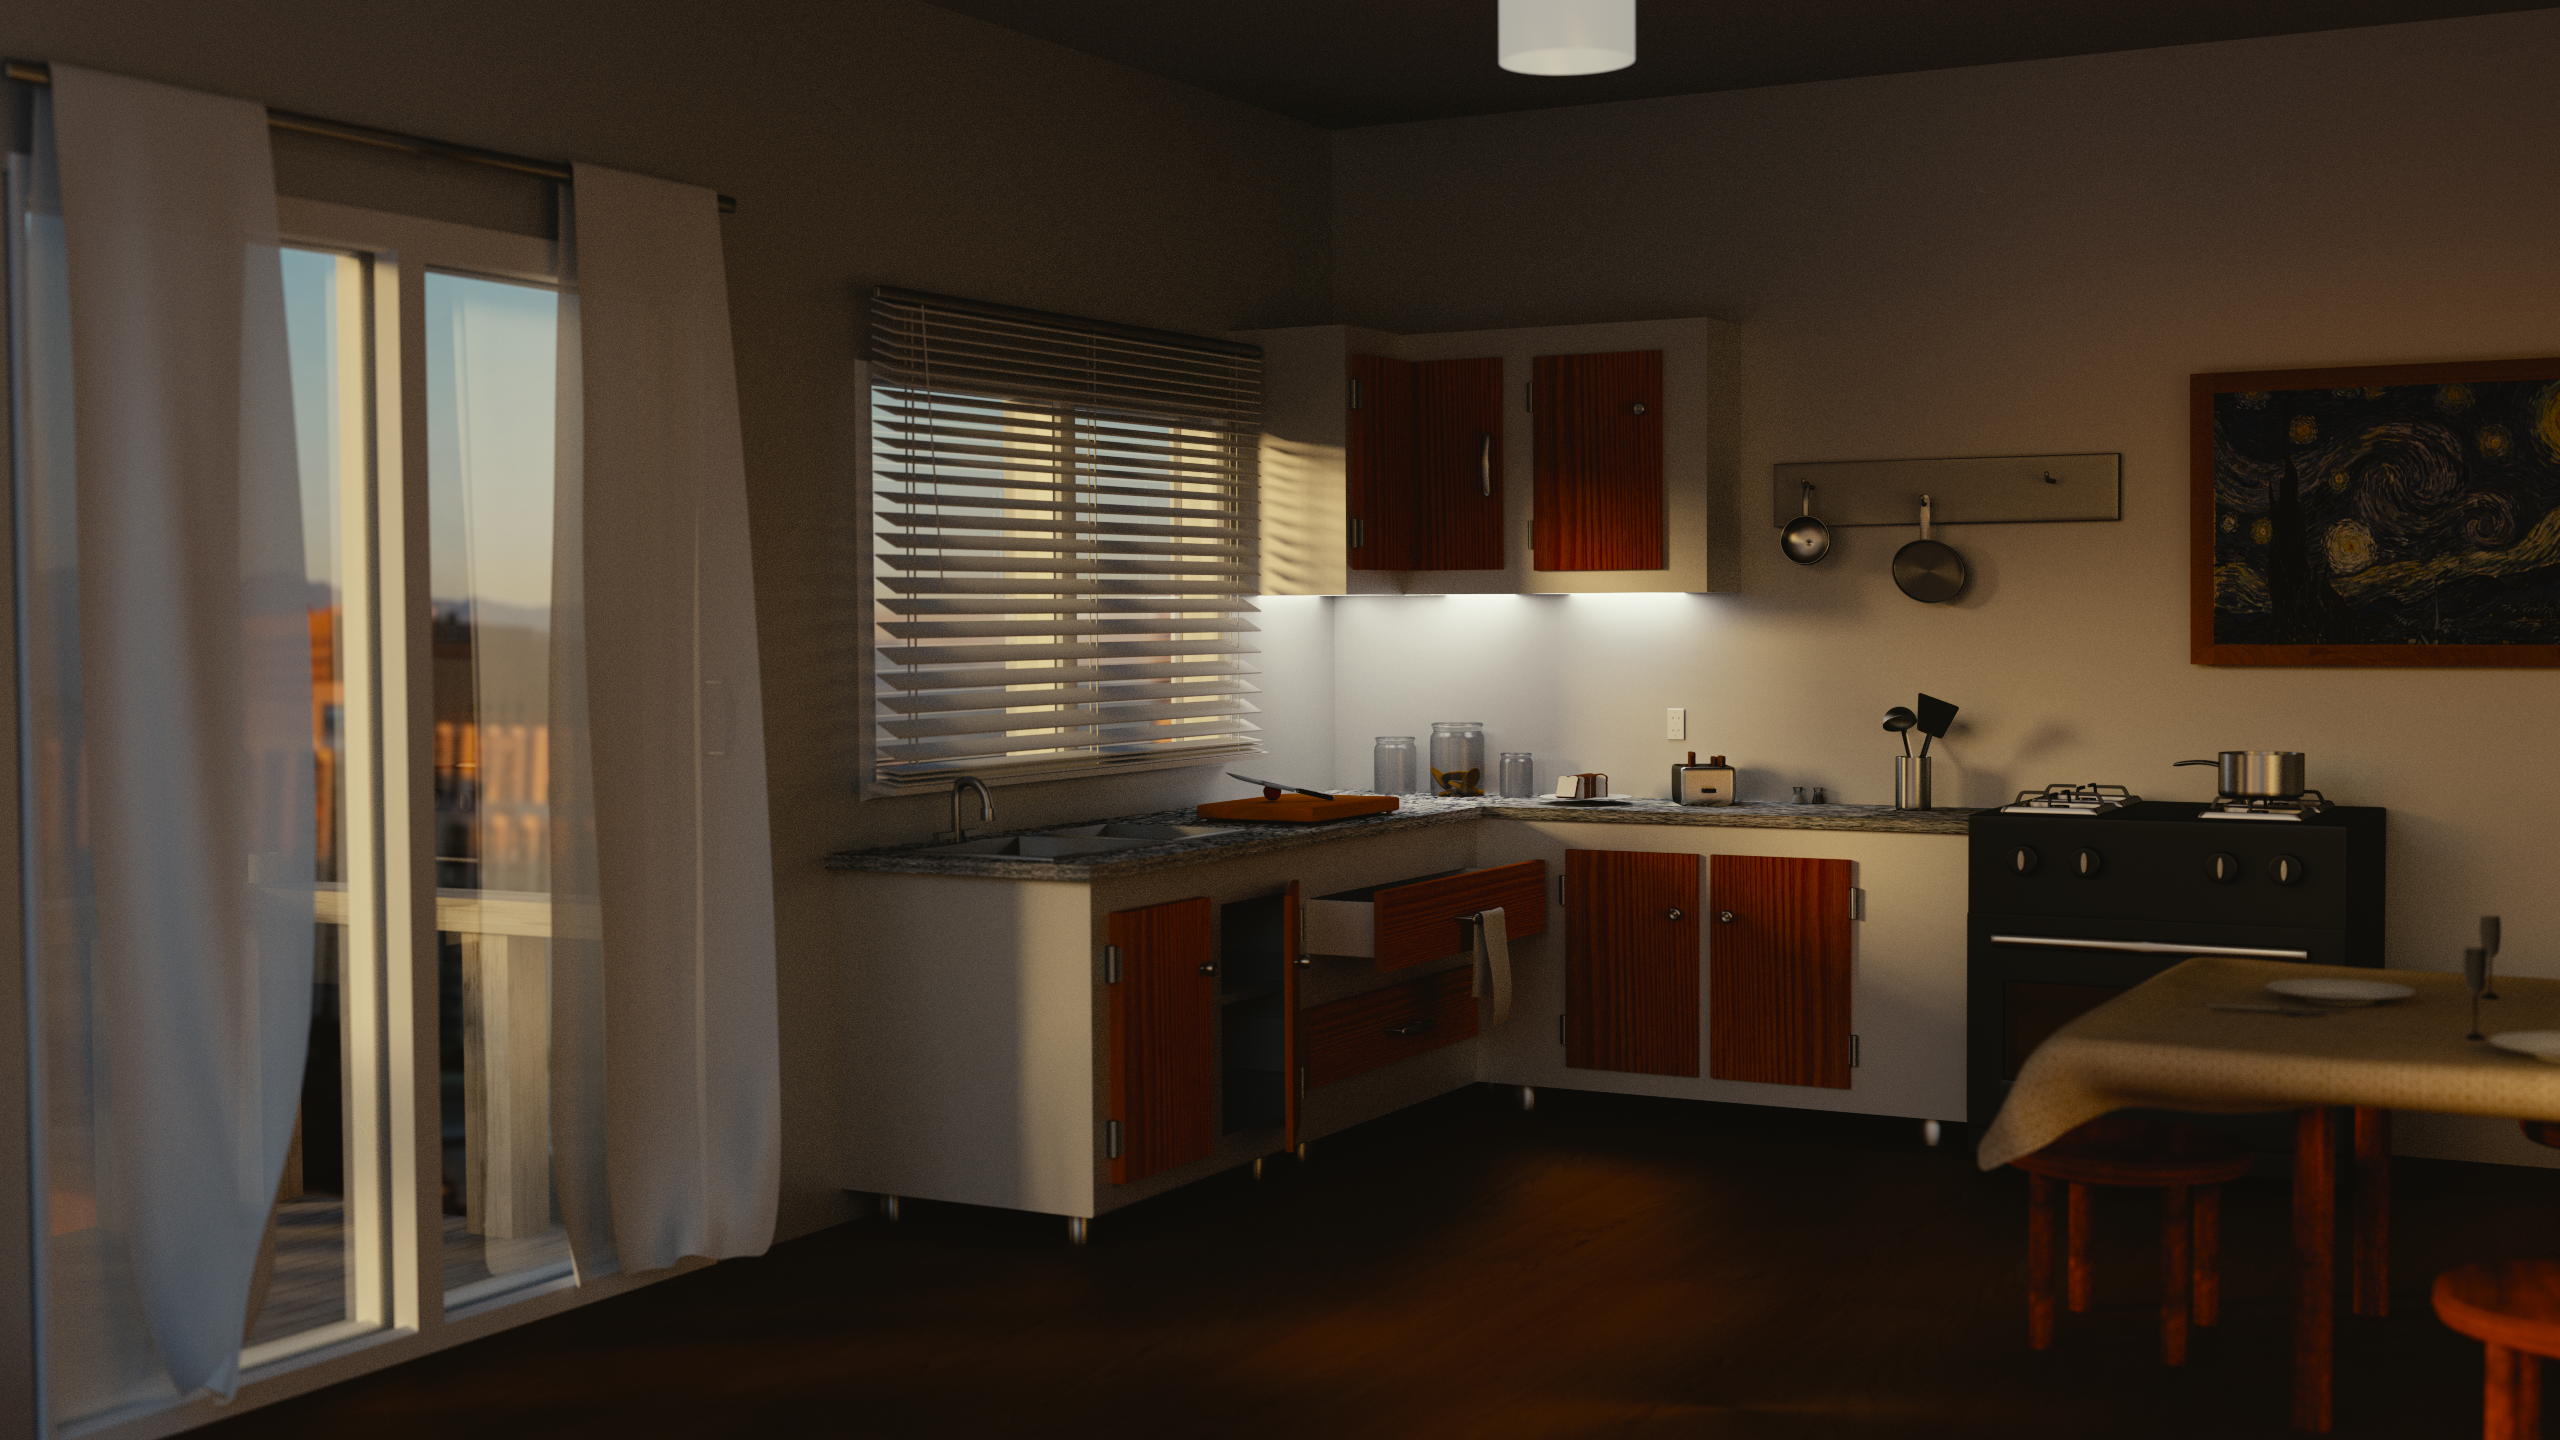 Morning apartment free 3d model obj 3ds fbx blend mtl for Apartment 3d model